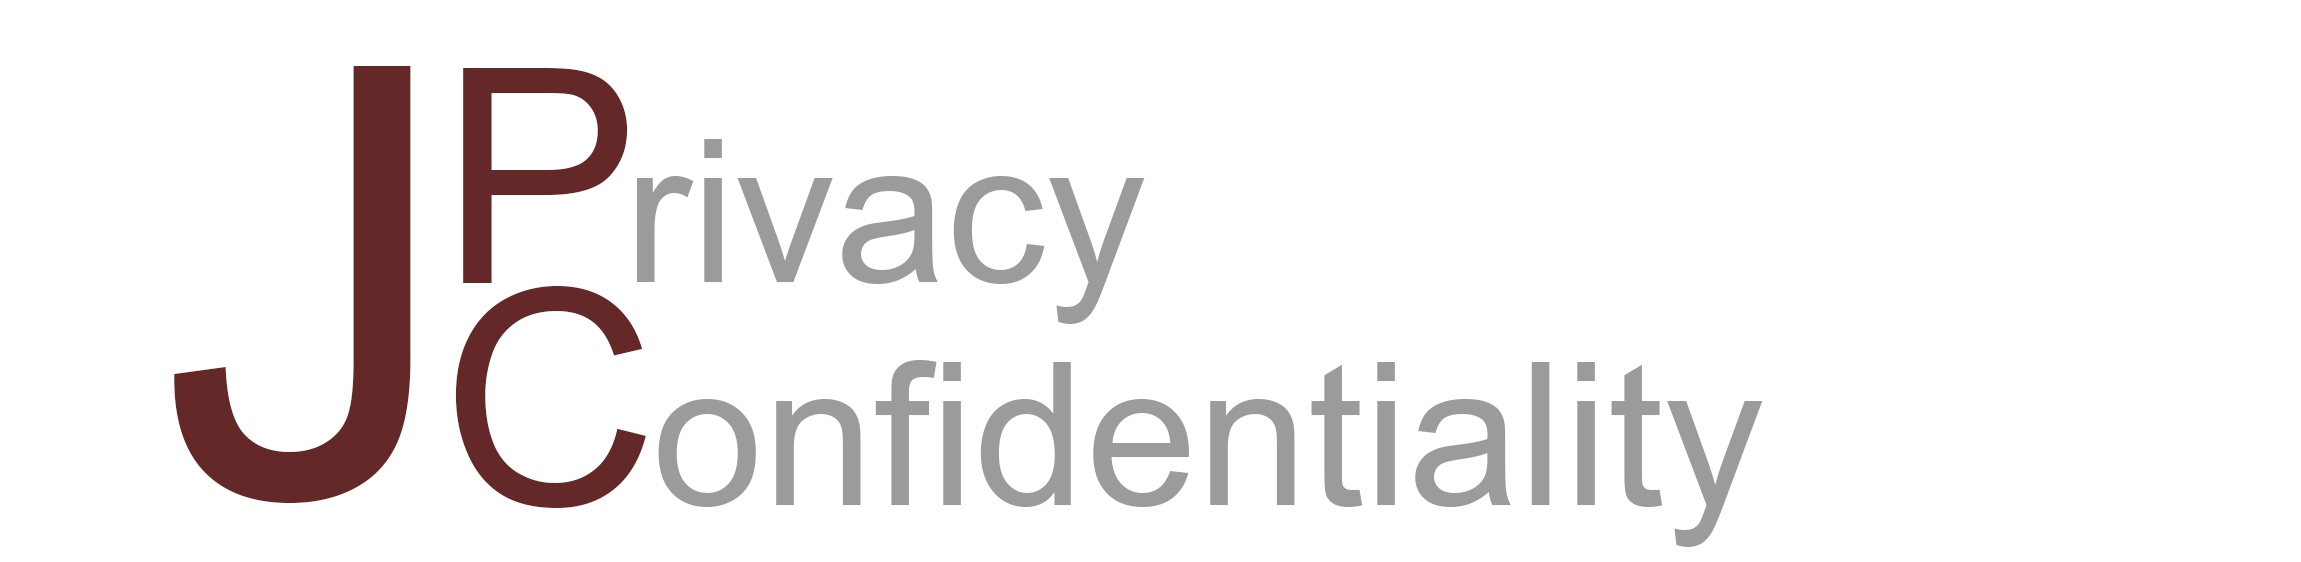 Journal of Privacy and Confidentiality